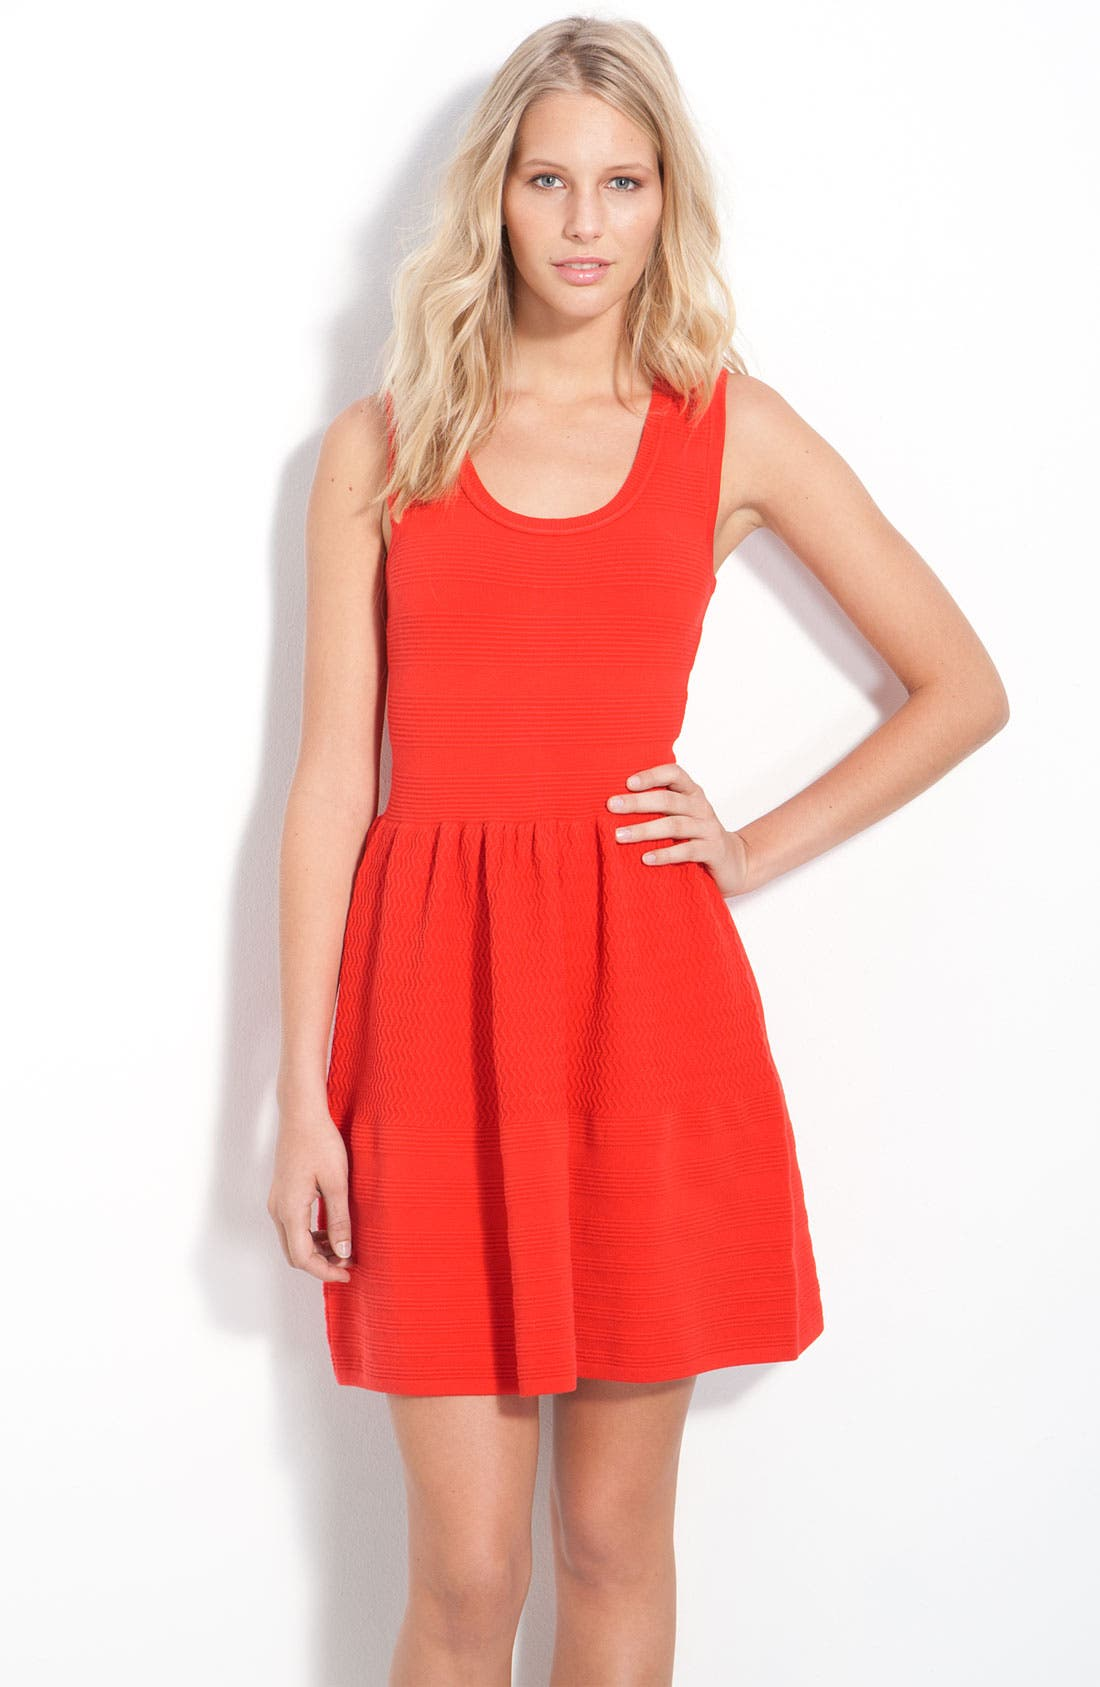 Main Image - Juicy Couture Sleeveless Textured Dress